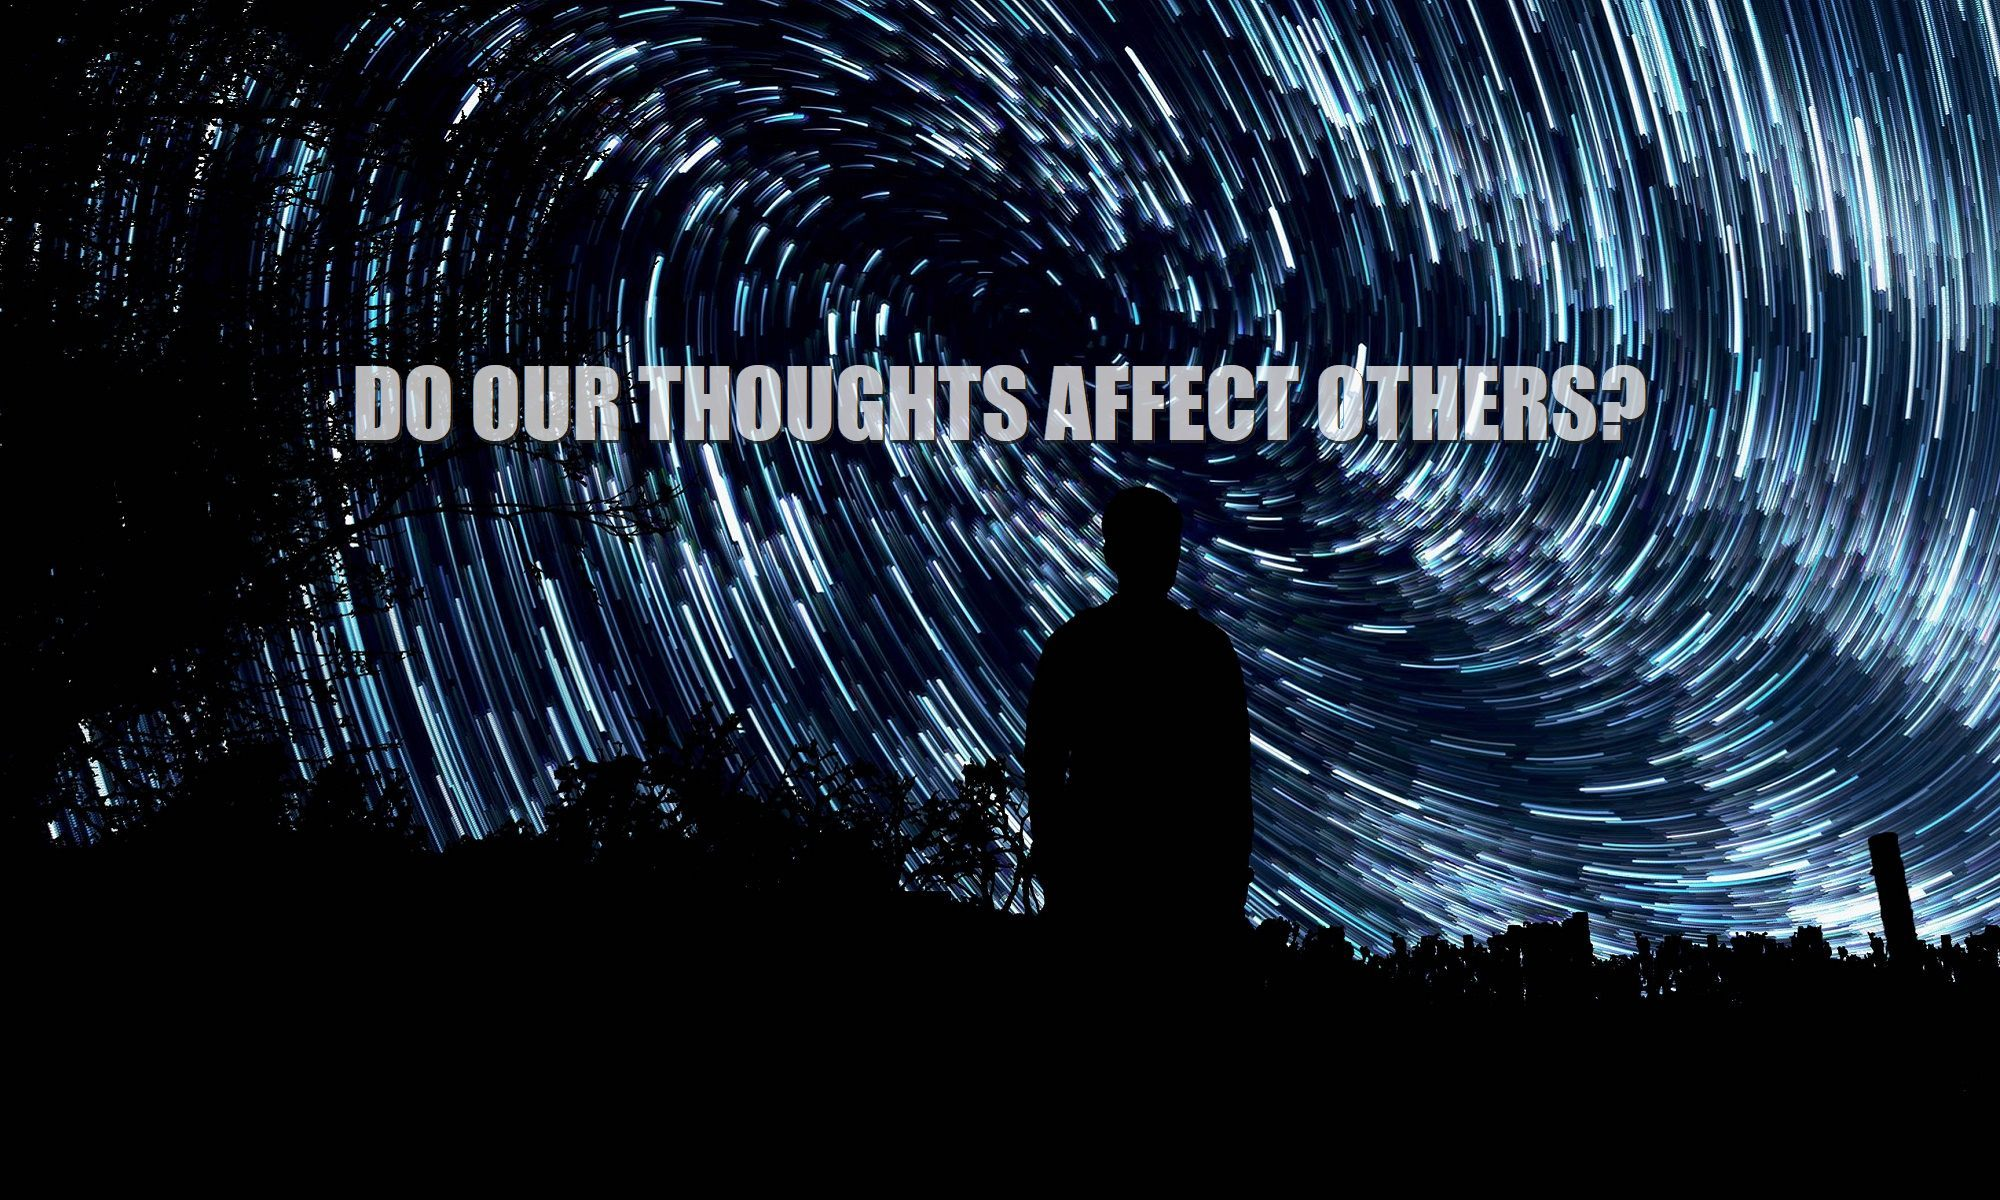 can-do-our-thoughts-affect-others-effect-influence-on-people-events-objects-reality-everything-OOT5-2000